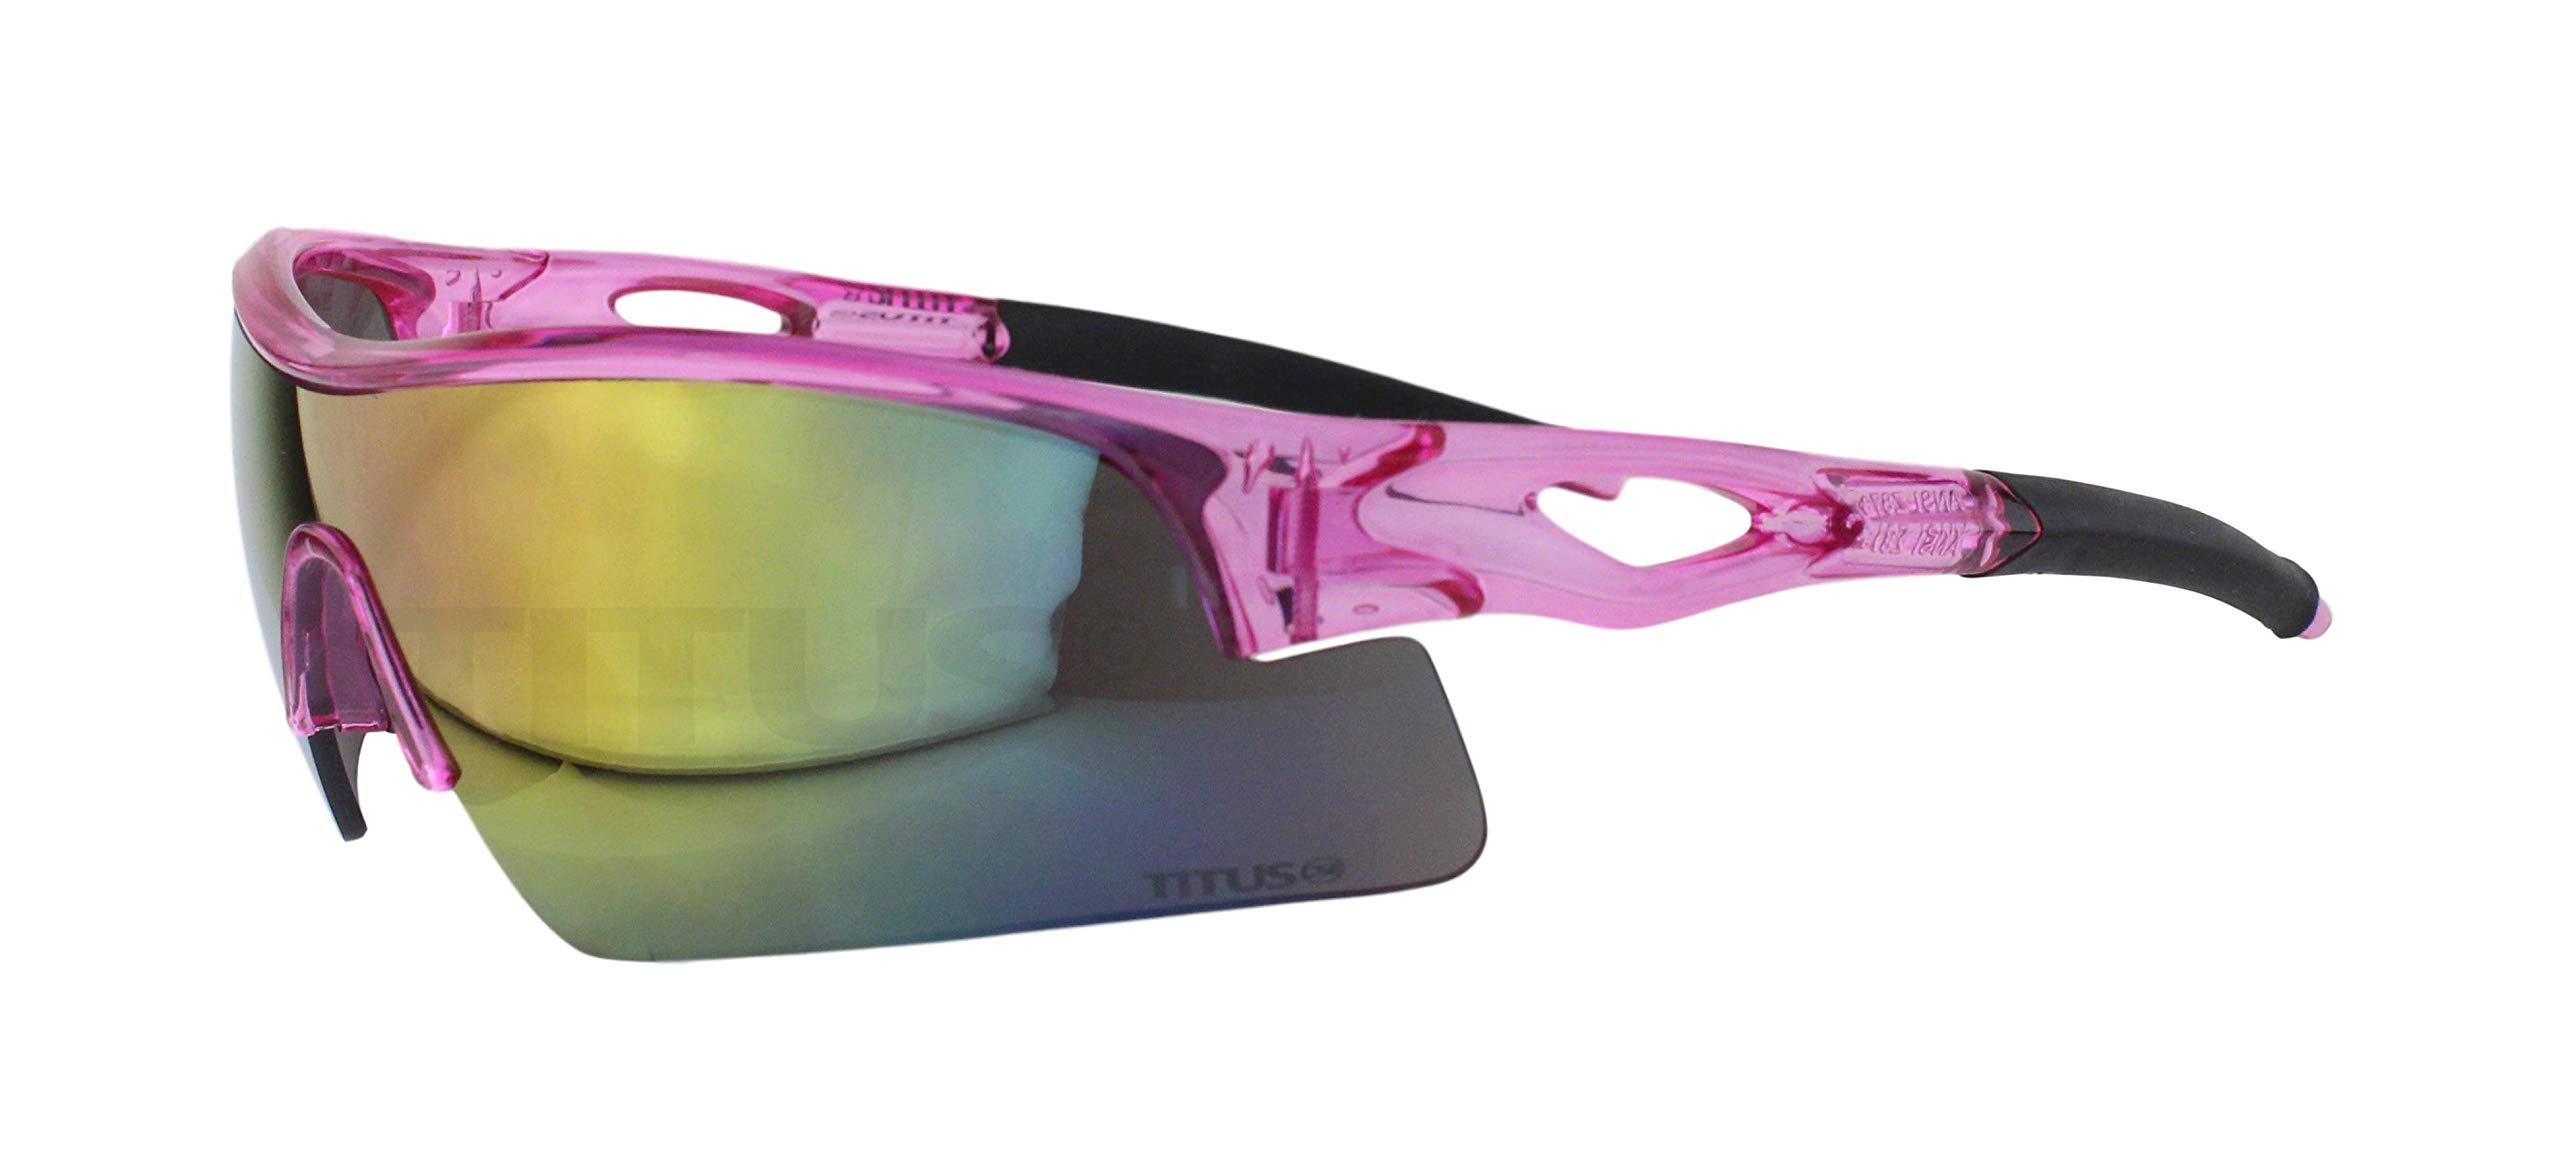 Titus All-Sports Frame Safety Glasses (with Pouch, Pink Frame - Mirrored Lens) by Titus